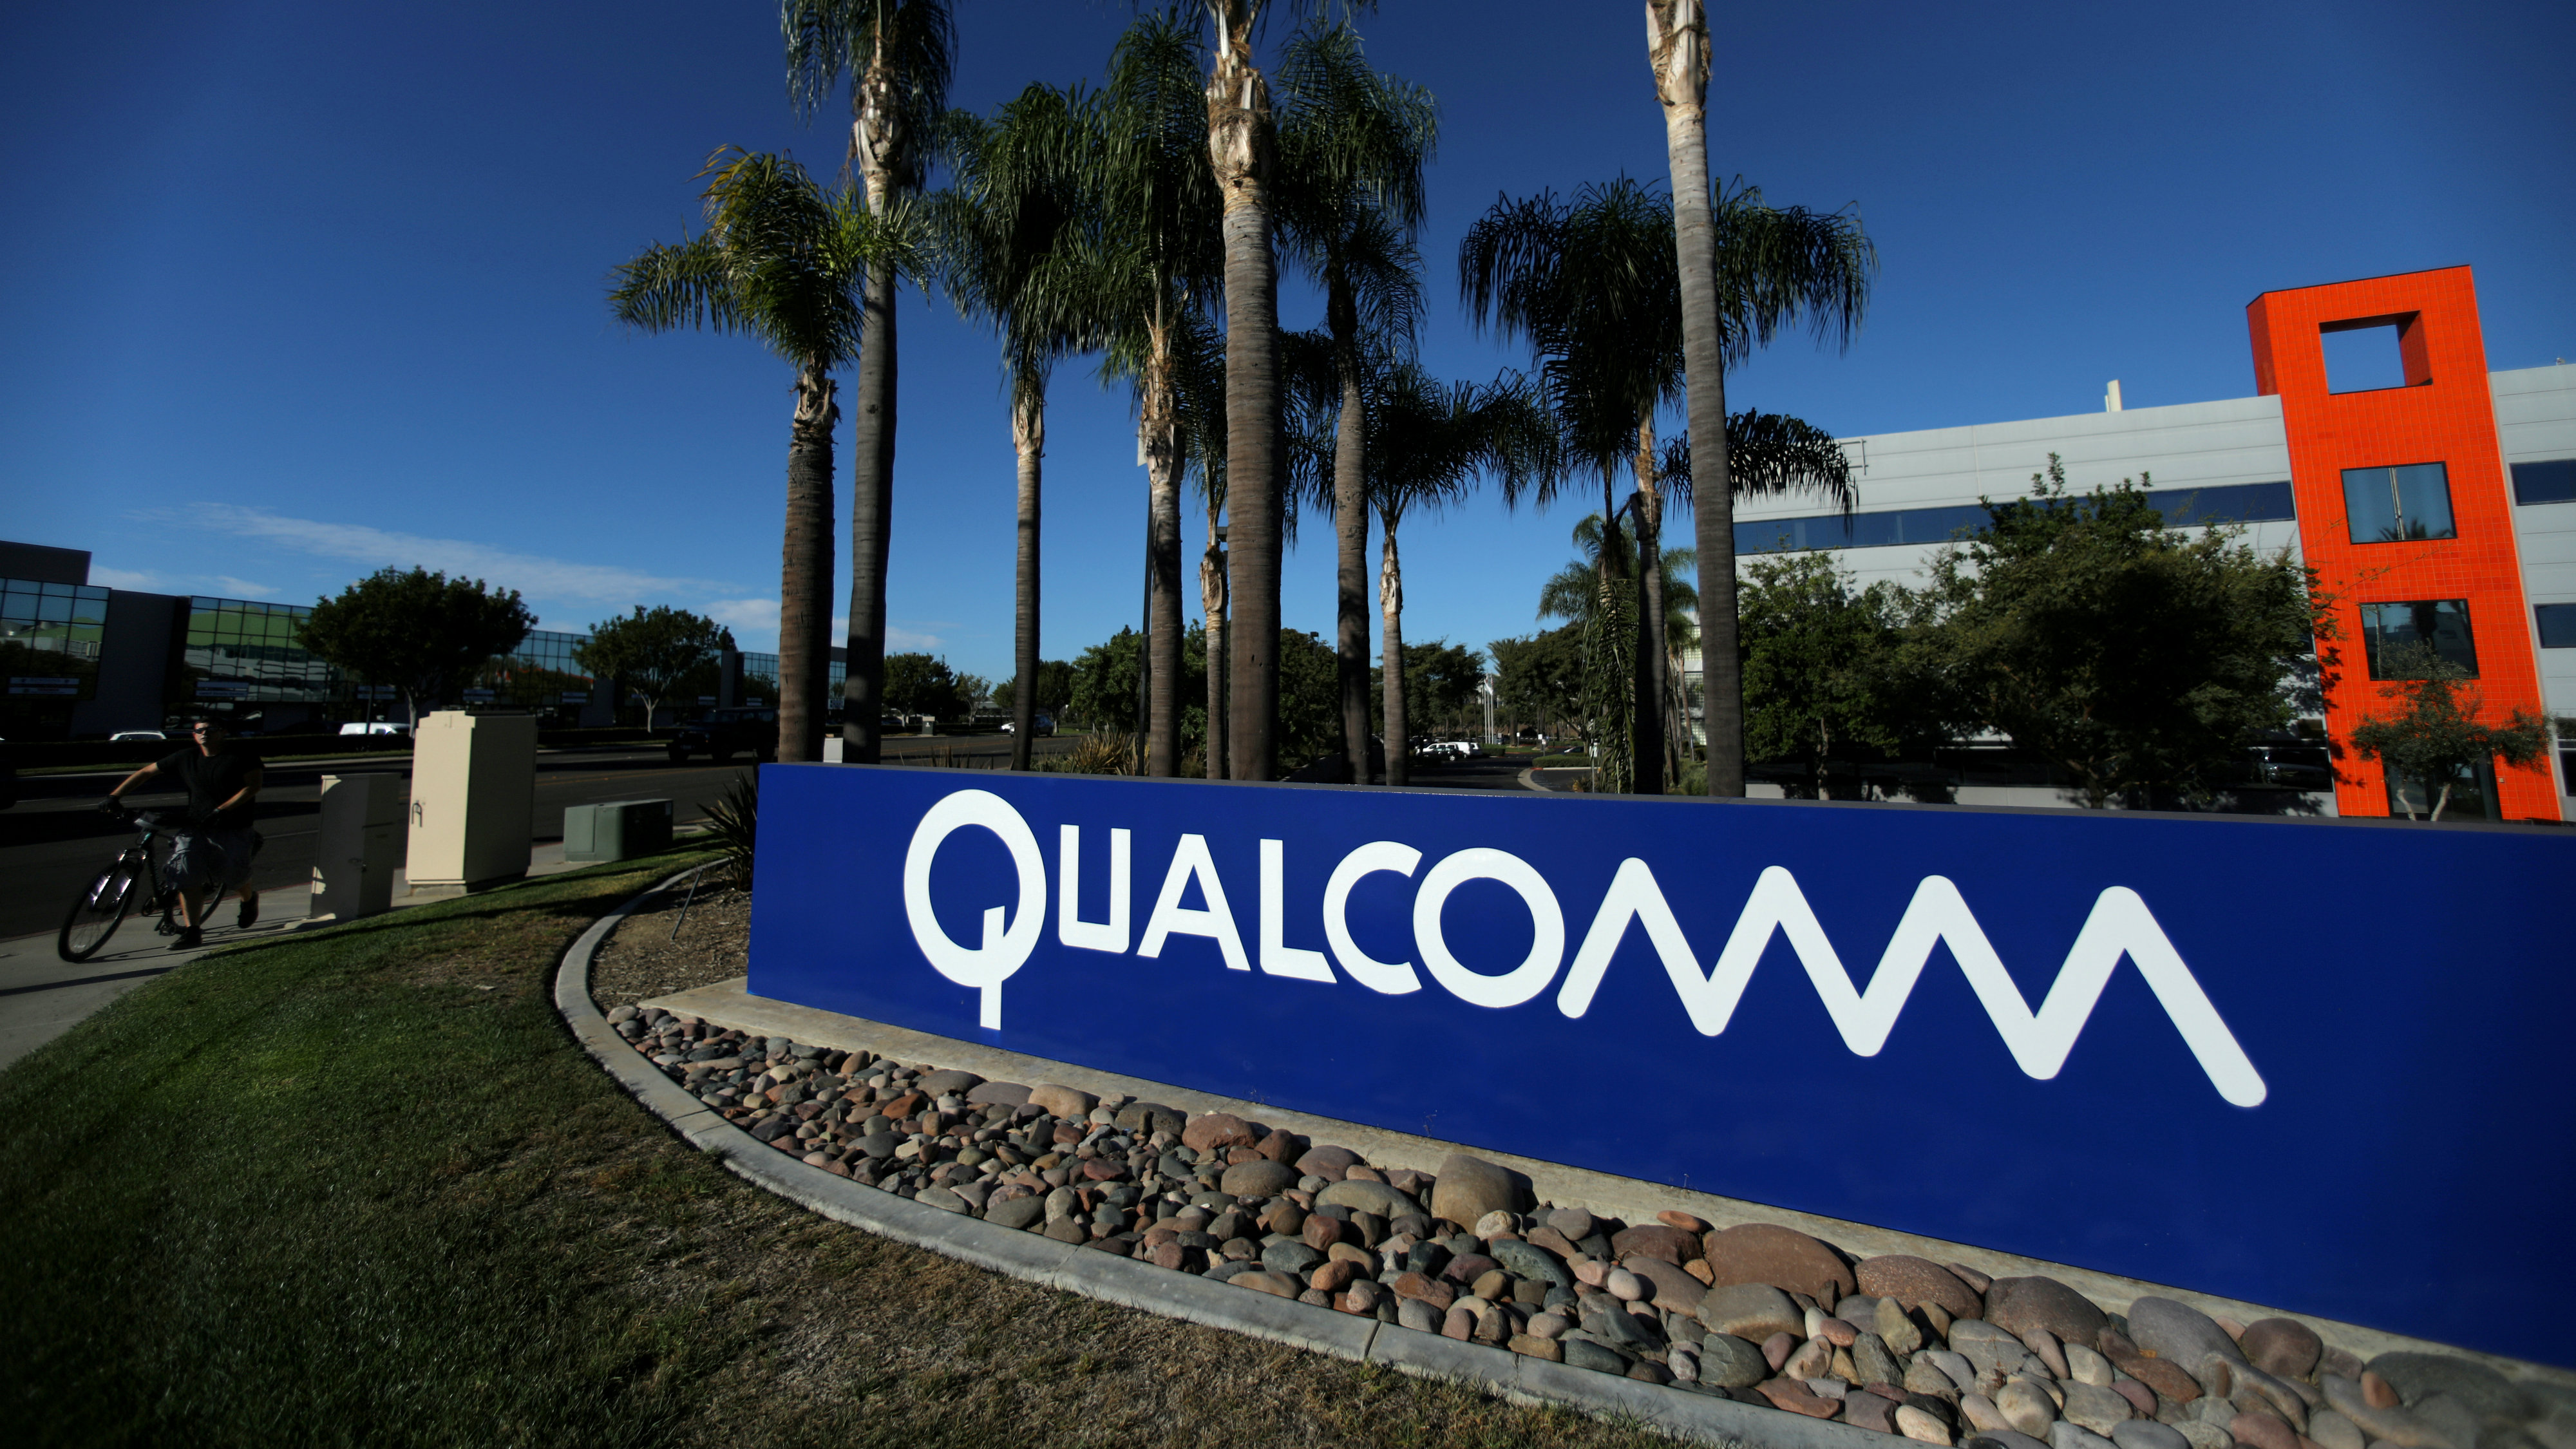 A sign on the Qualcomm campus is seen in San Diego, California